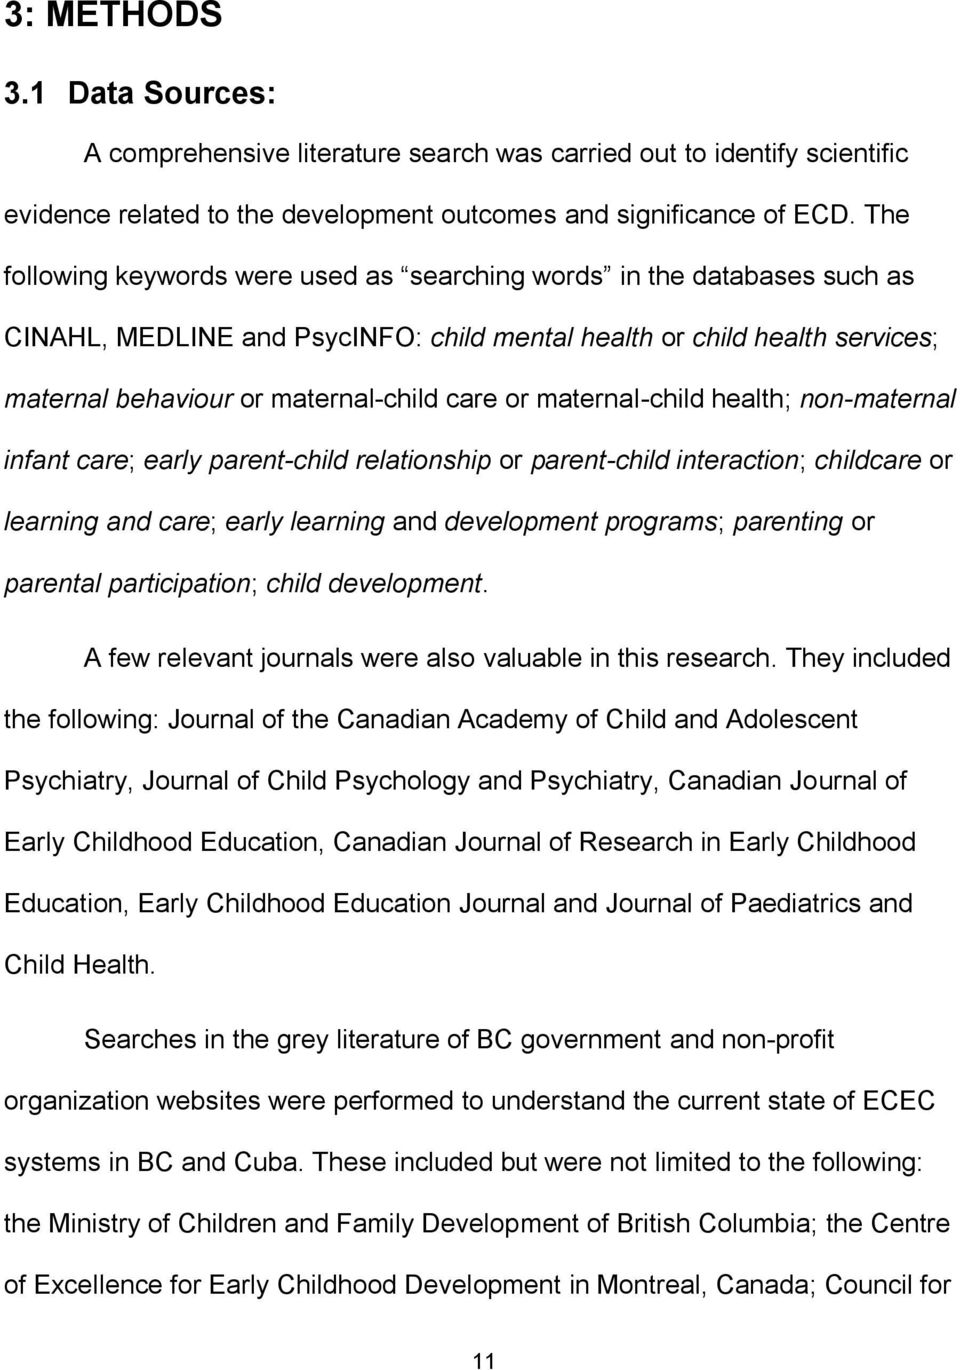 maternal-child health; non-maternal infant care; early parent-child relationship or parent-child interaction; childcare or learning and care; early learning and development programs; parenting or